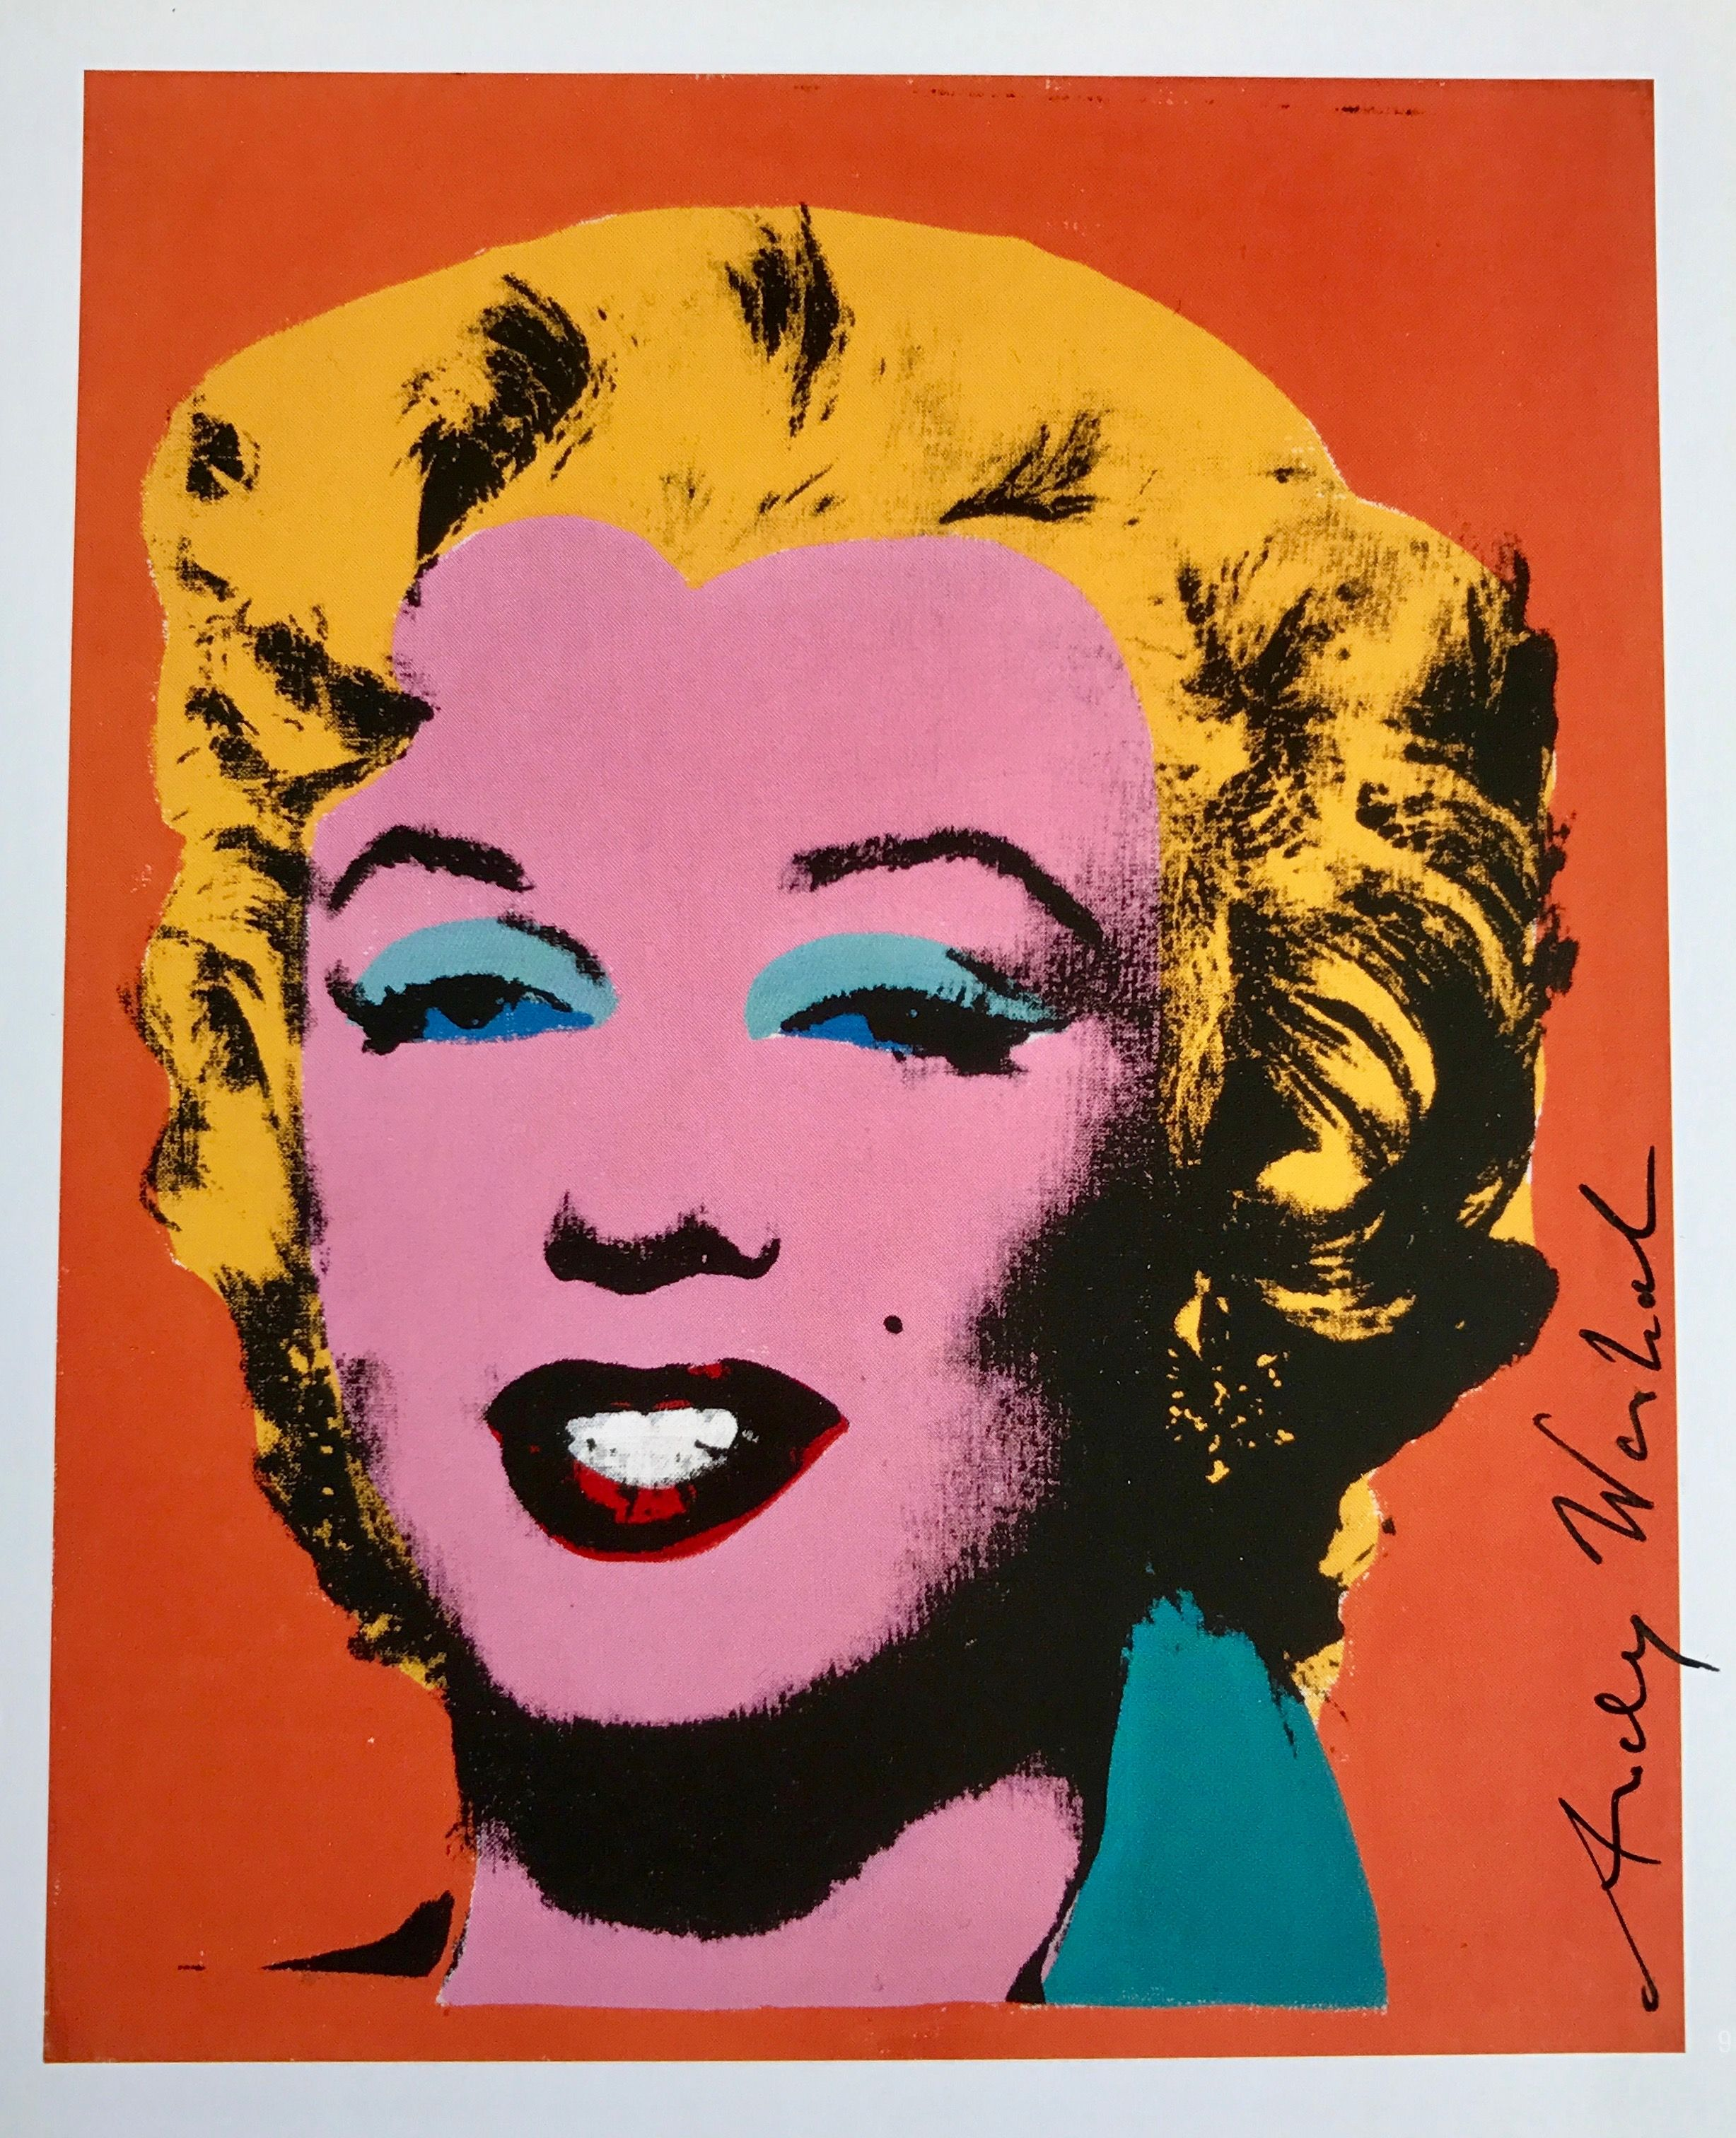 Orange Shot on White Background-1998 Poster Andy Warhol-Marilyn